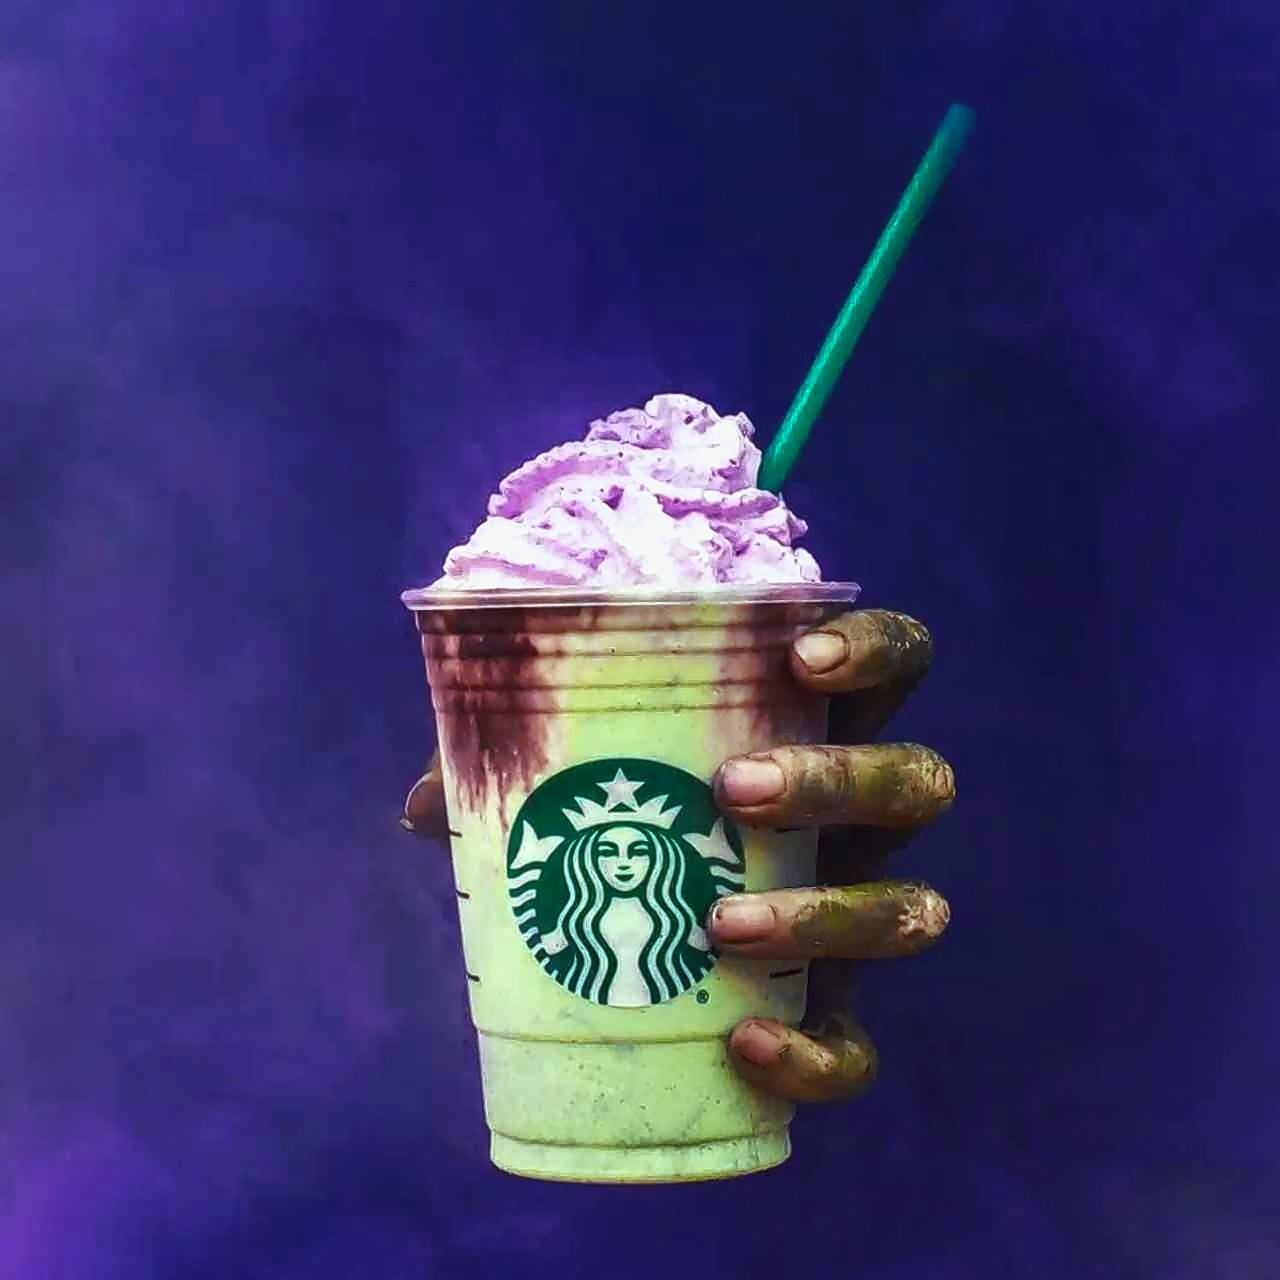 The colorful Zombie Frappuccino seems to have been designed for Instagram and Snapchat.